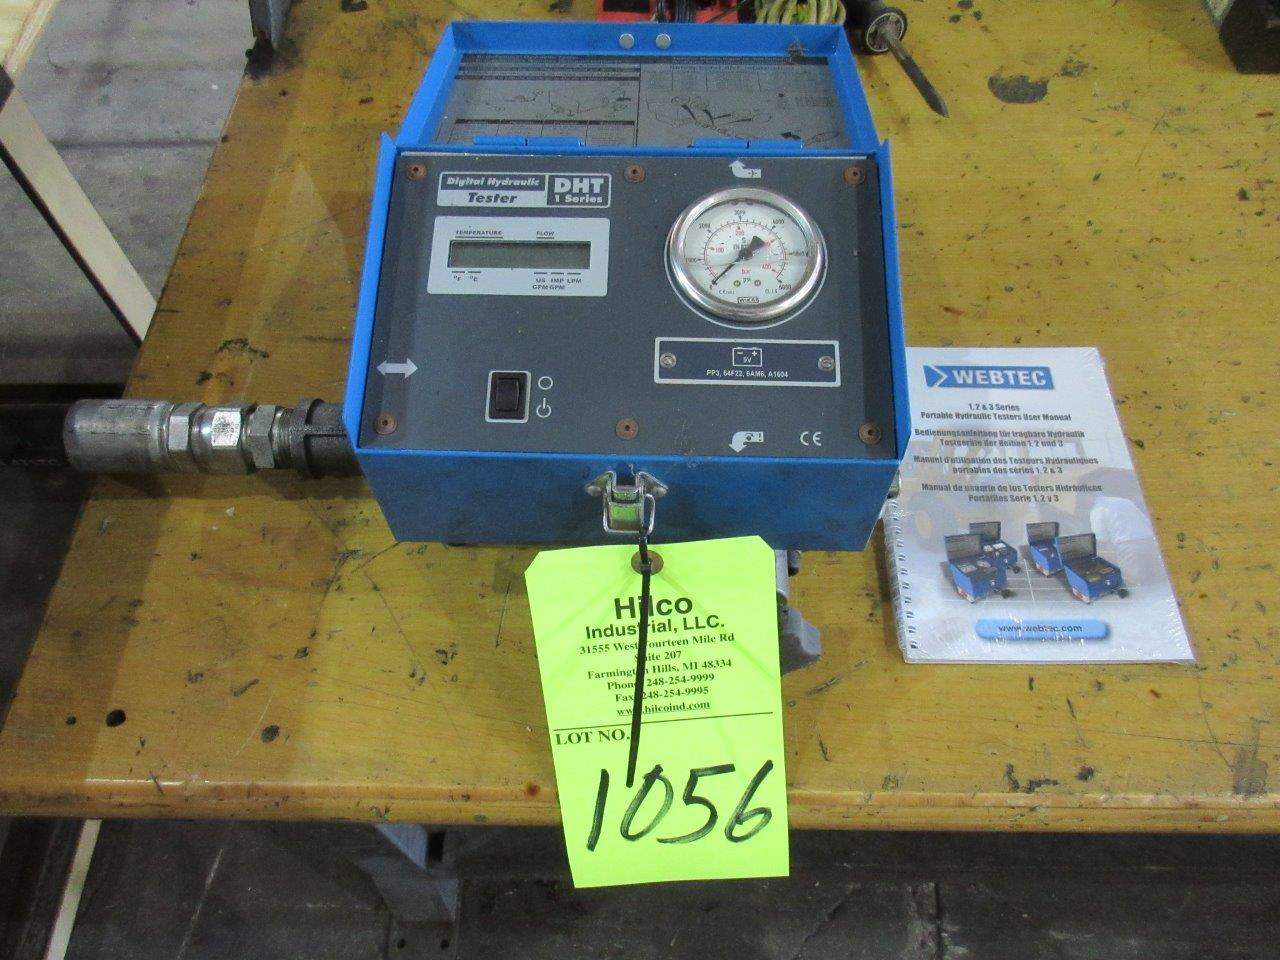 Model DHT 401-S-6 Webtec, Bi-Directional Hydraulic Flow Meter Unit